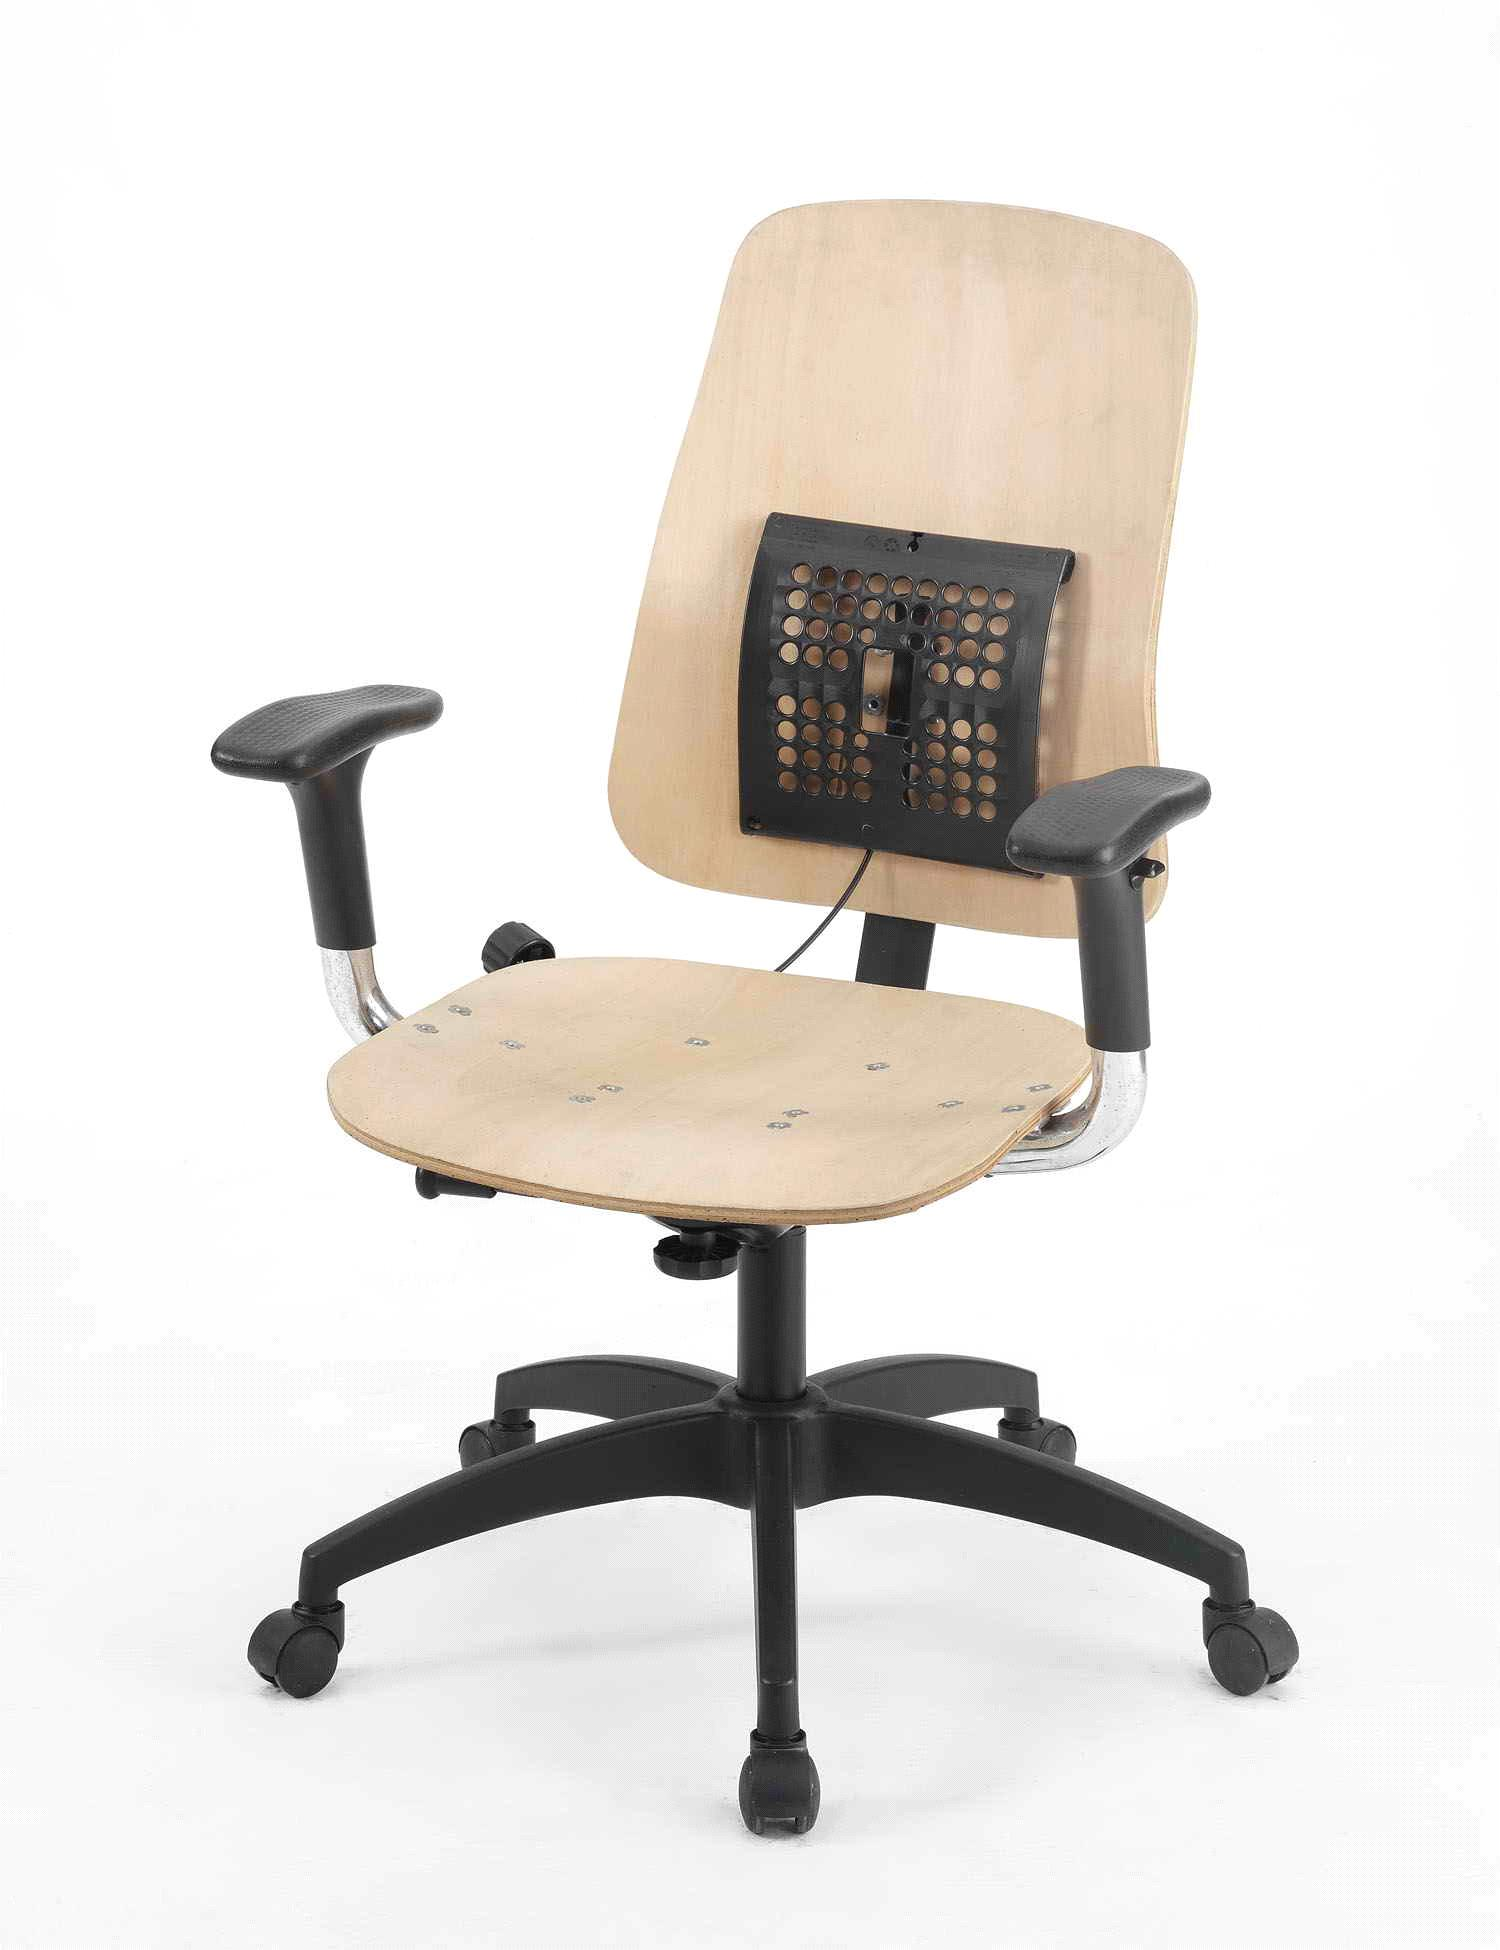 CH-601-HBAjustable Lumbar Support Mechanism for Office Chair